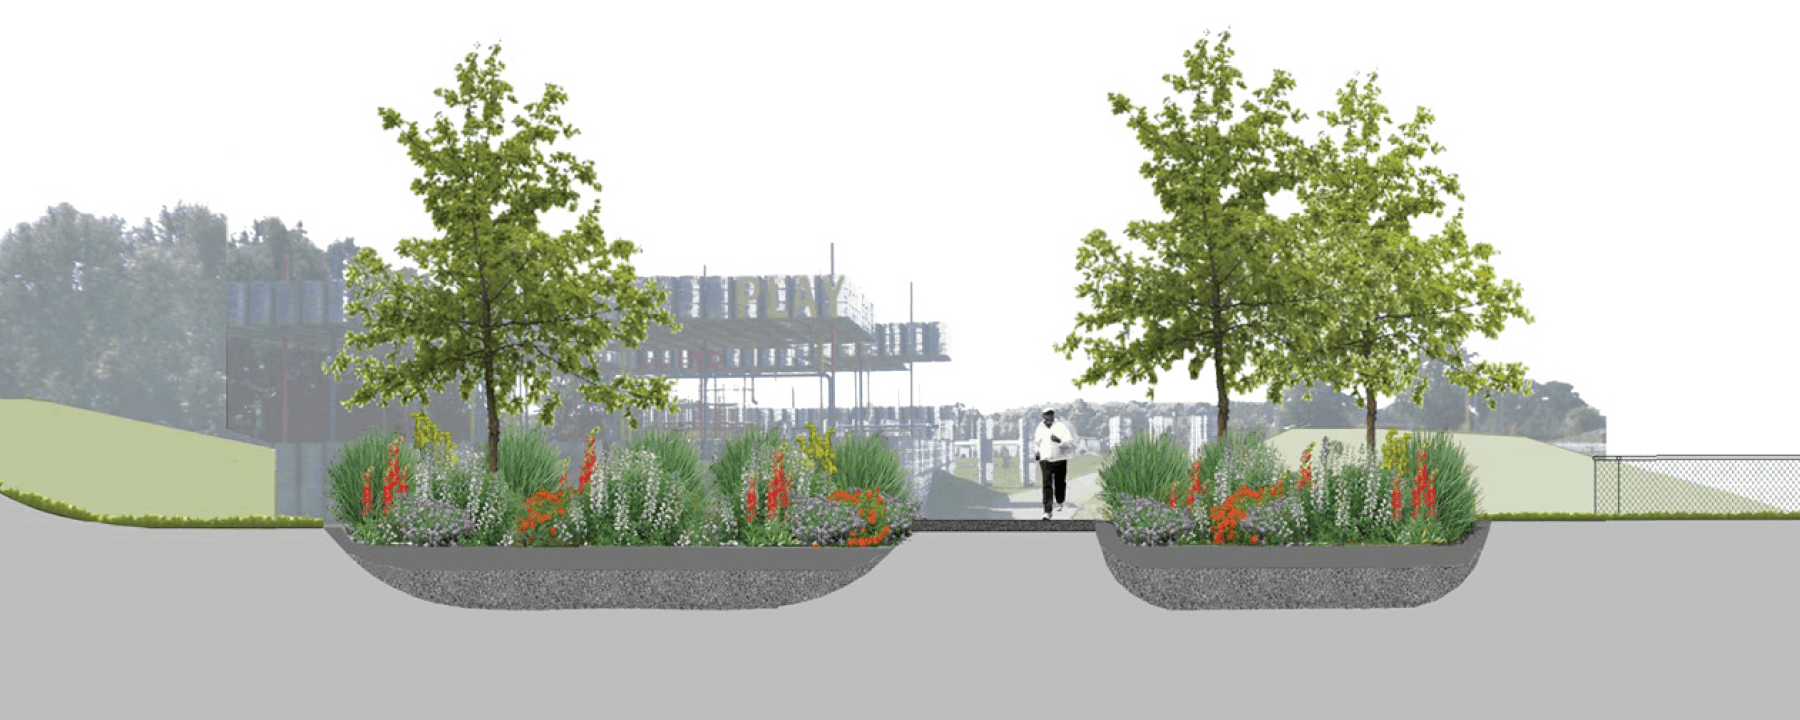 rendering of landscape plan with jogger